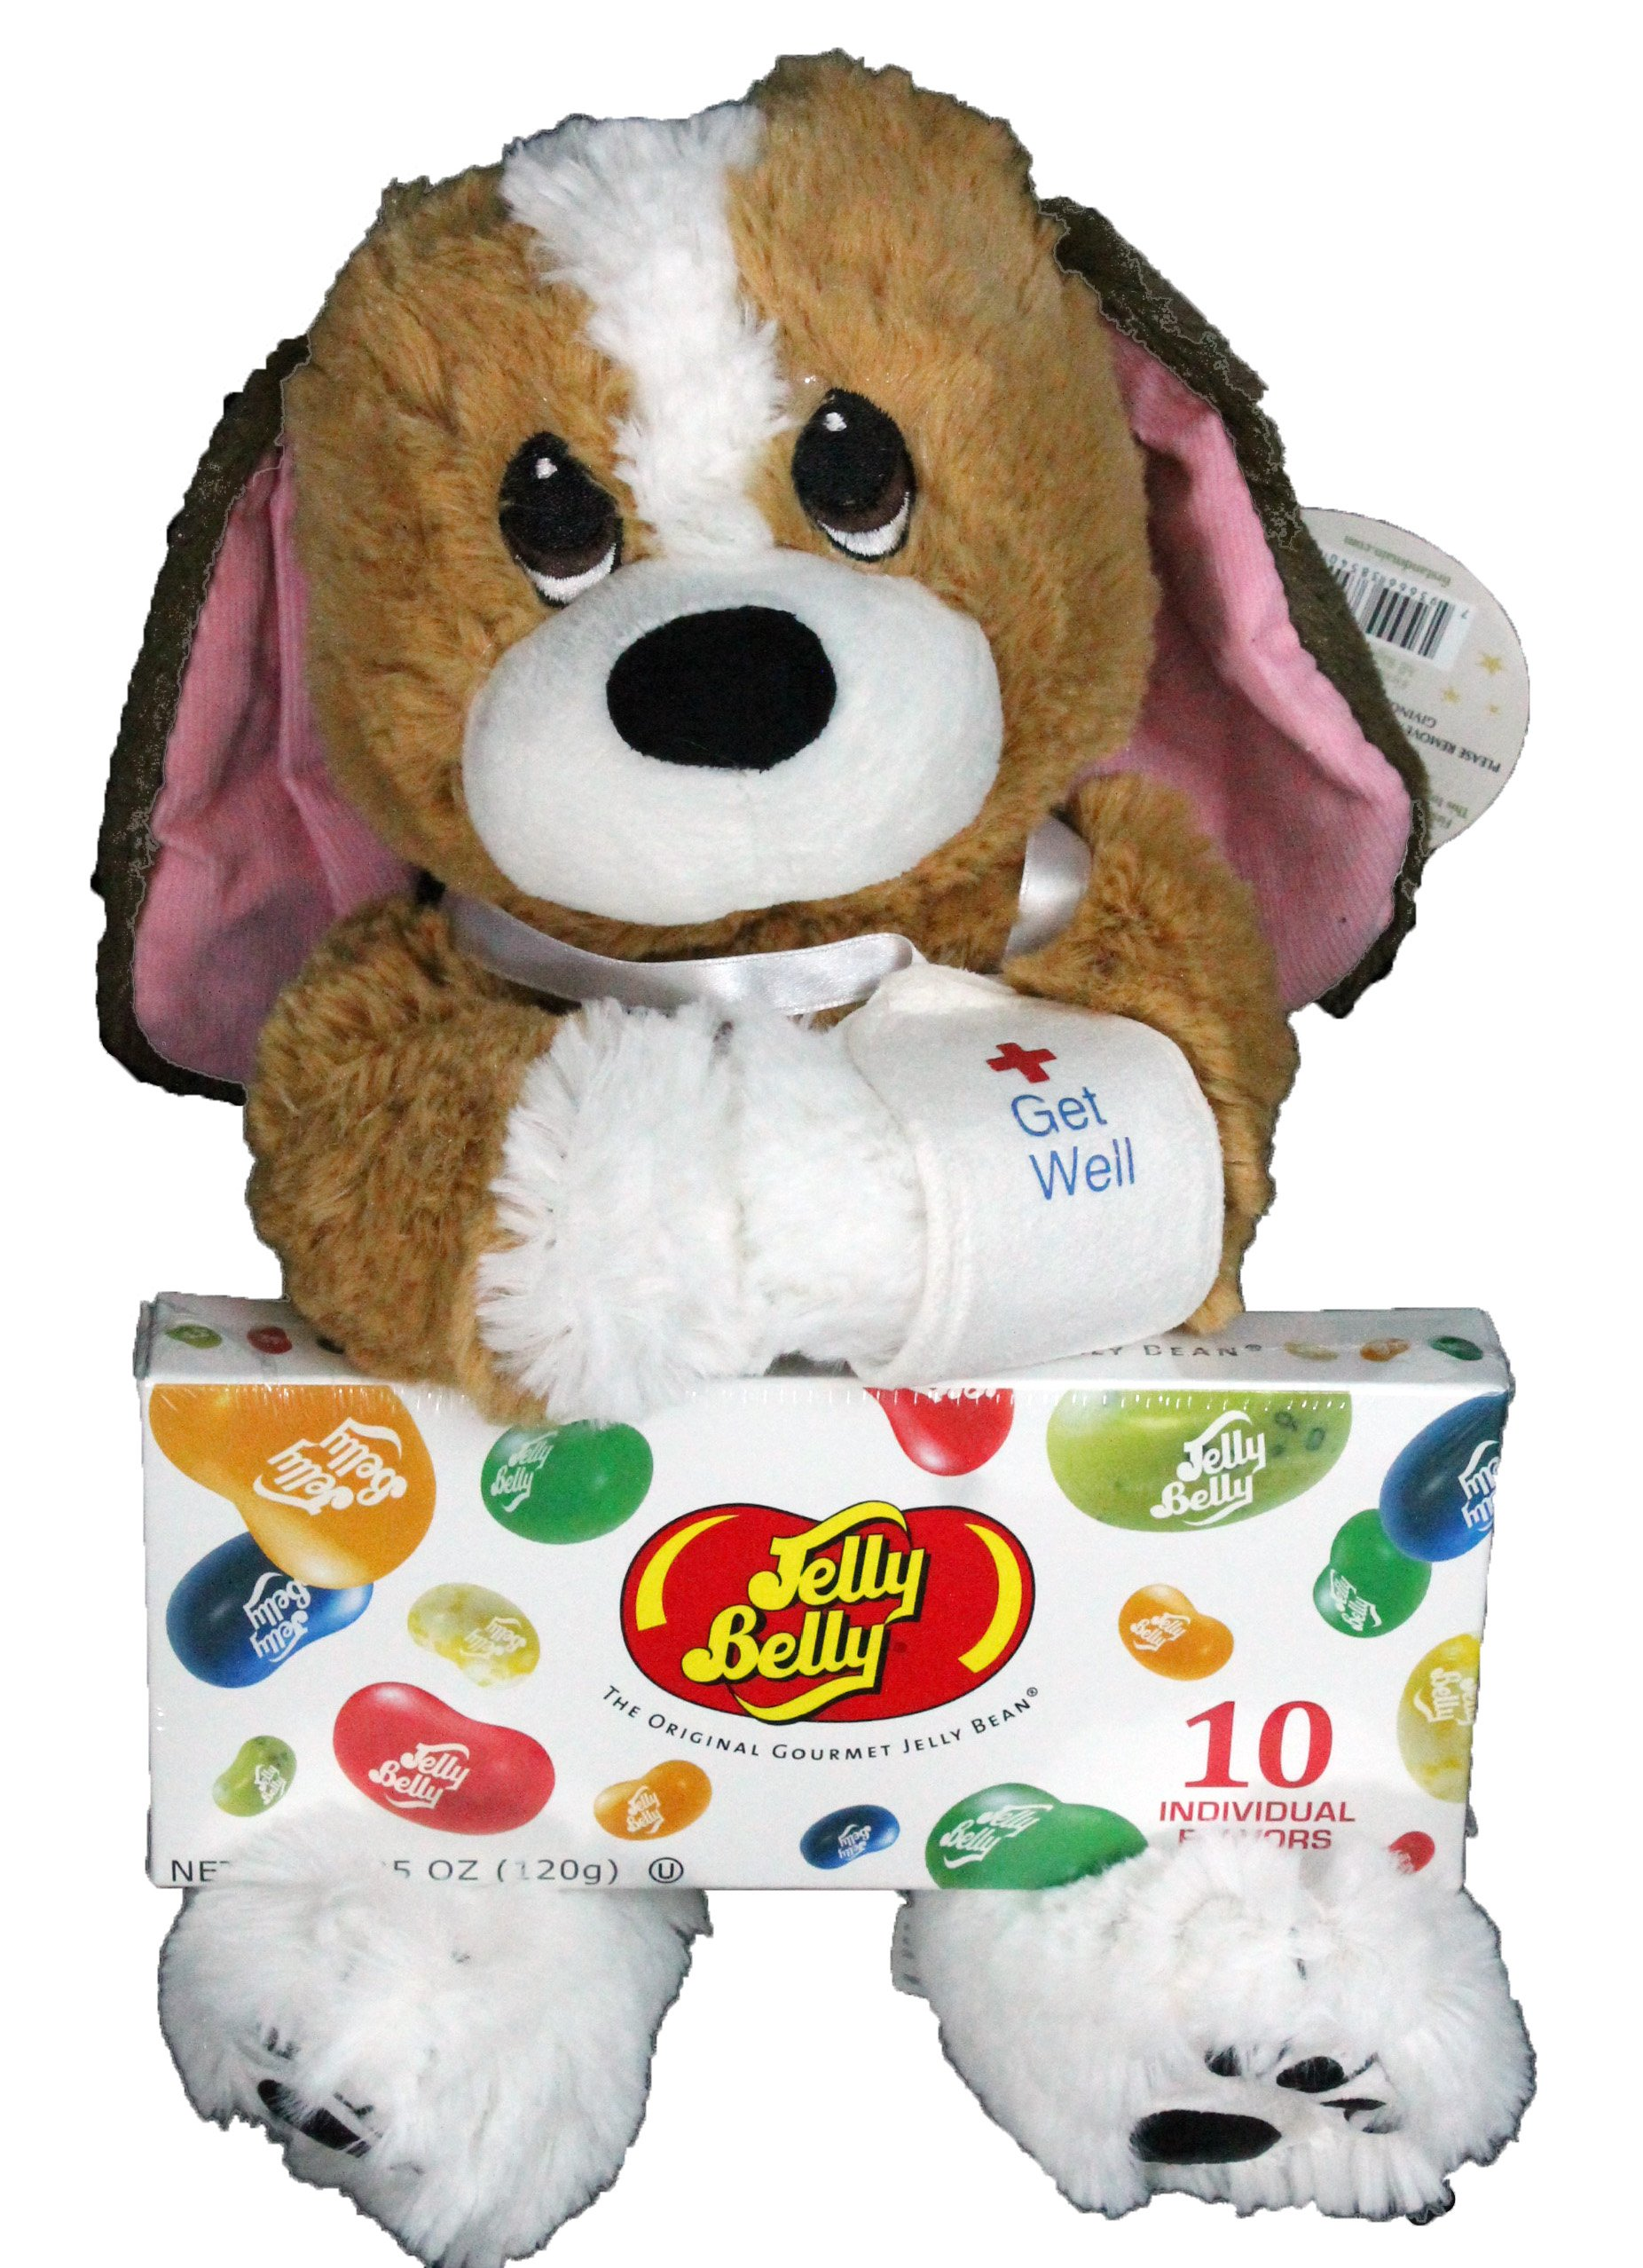 Get Well Gift Set For Kids - 2 Piece Plush Dog Melancholy Mel and Jelly Belly Gift Box or Hospital Gift for Boys